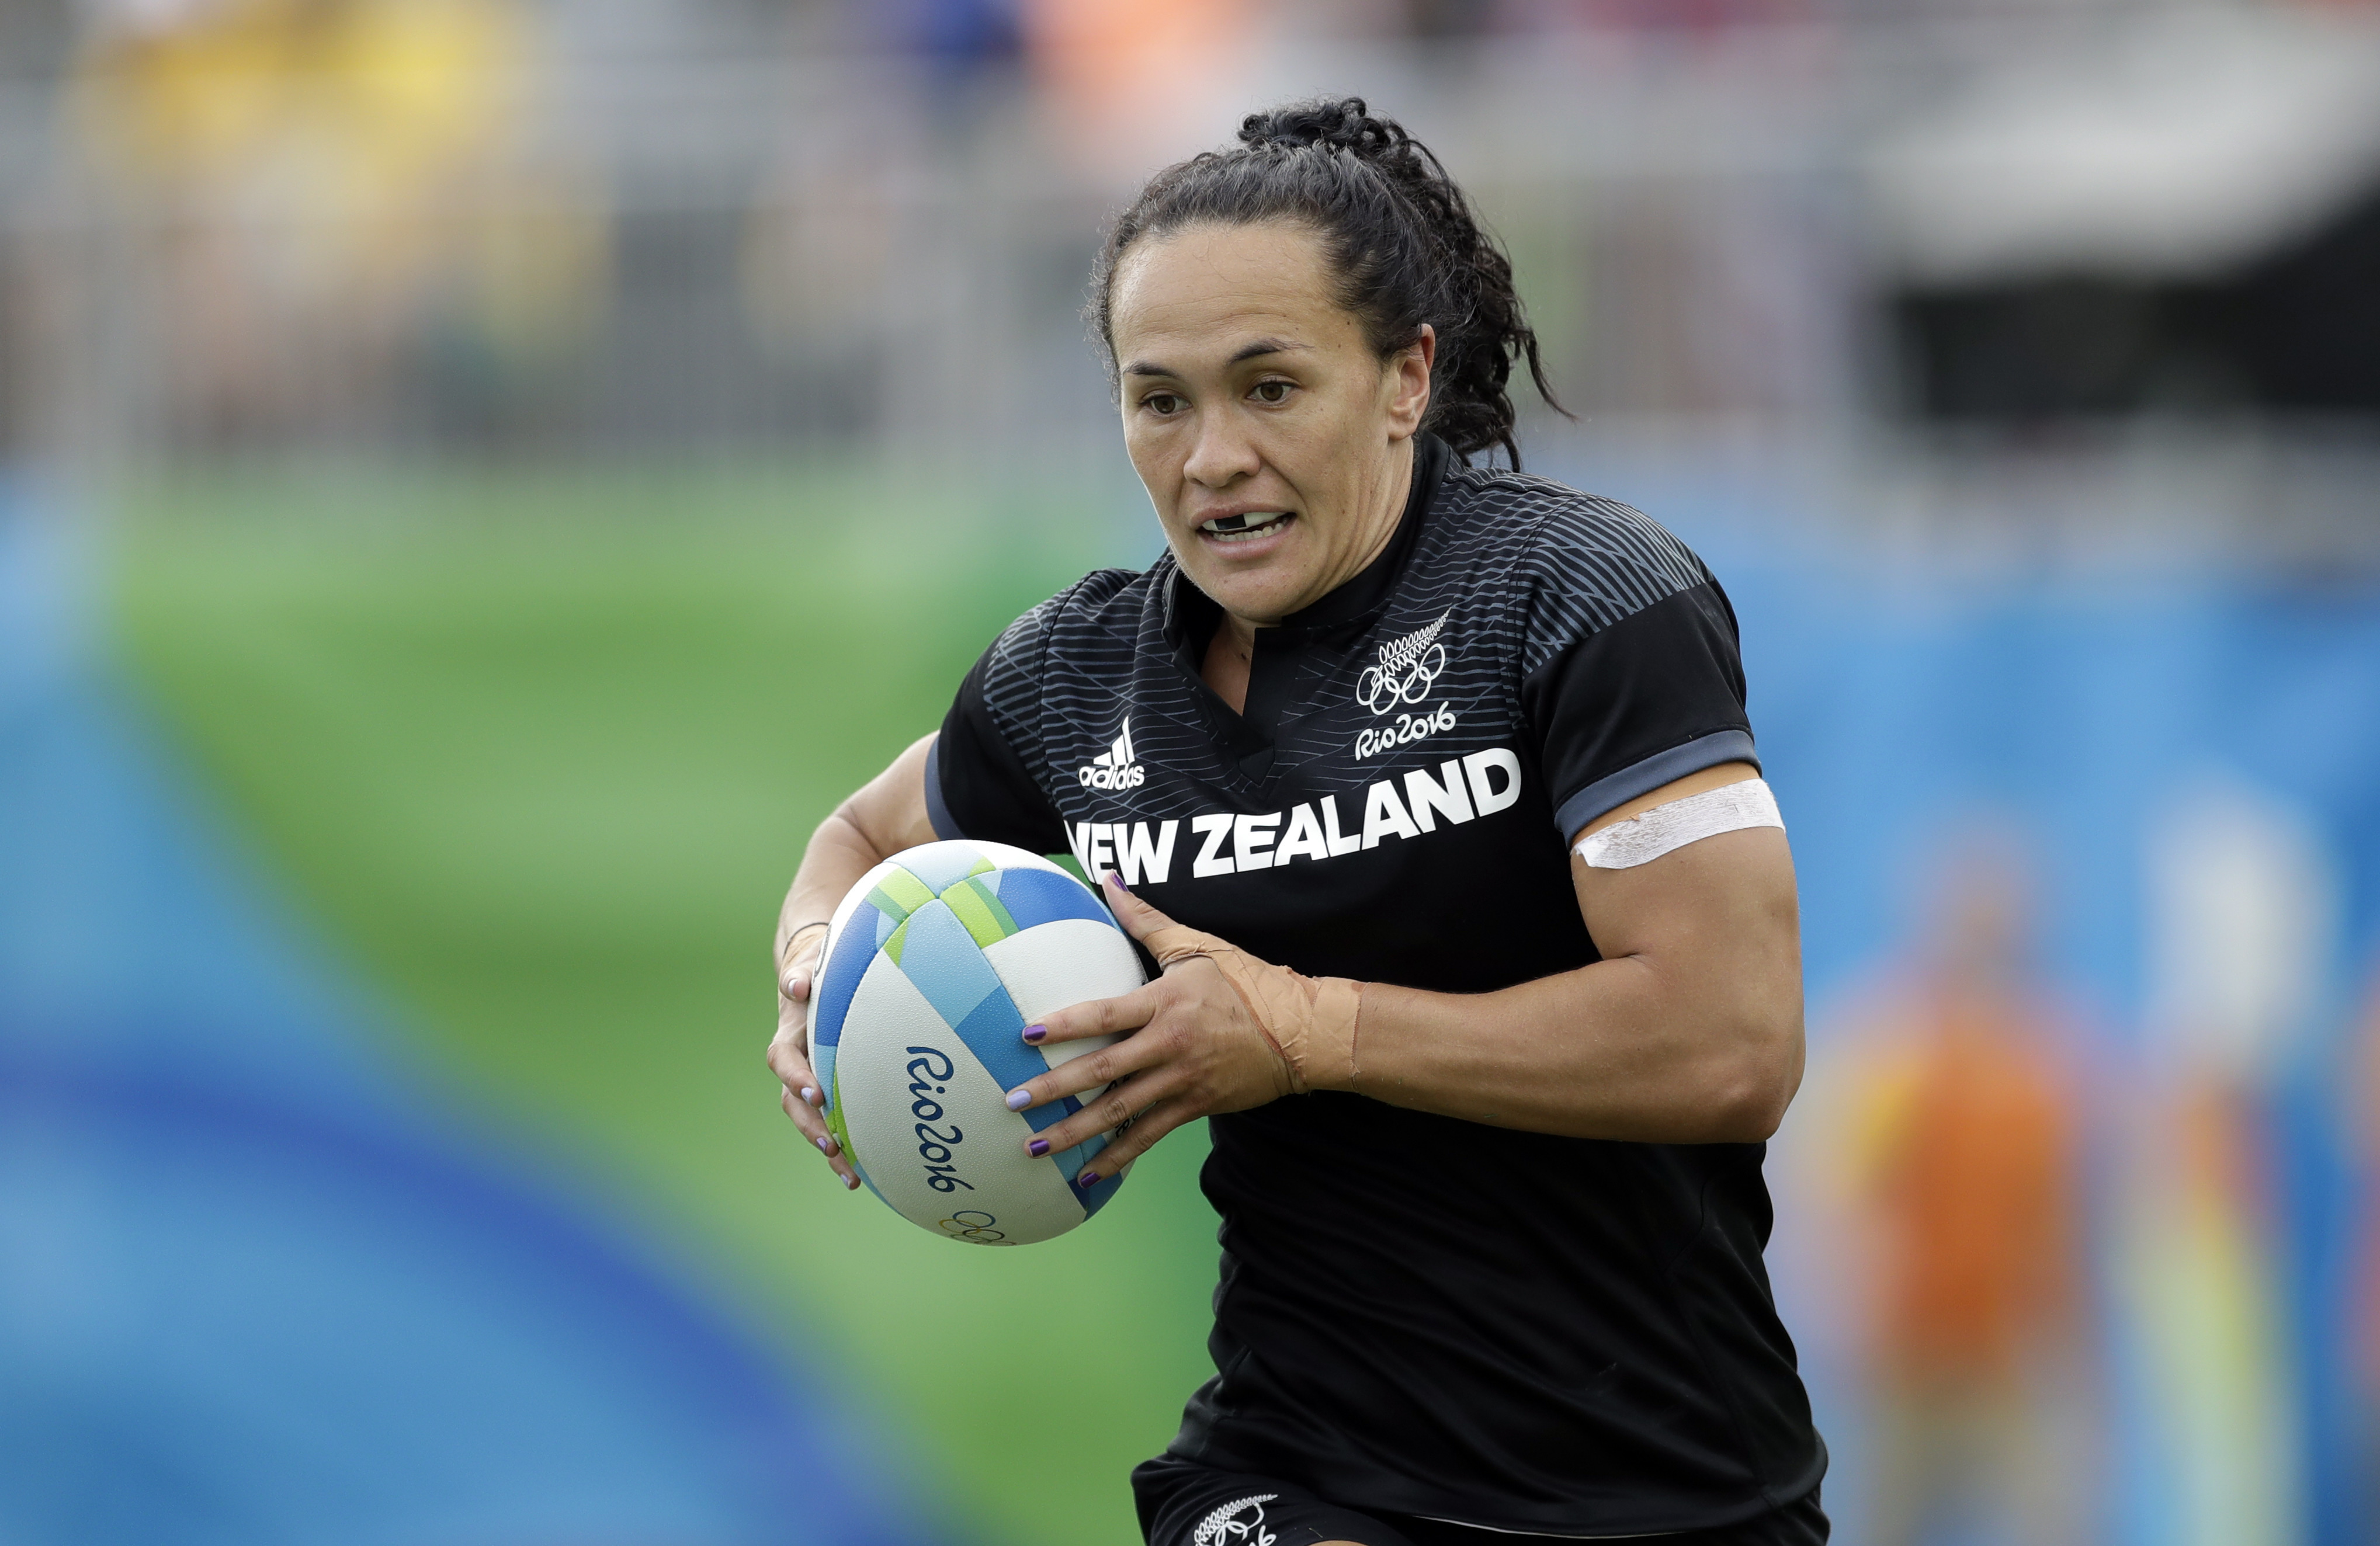 New Zealand's Portia Woodman, scores a try during the women's rugby sevens semi final match against Great Britain at the Summer Olympics in Rio de Janeiro, Brazil, Monday, Aug. 8, 2016. (AP Photo/Themba Hadebe)